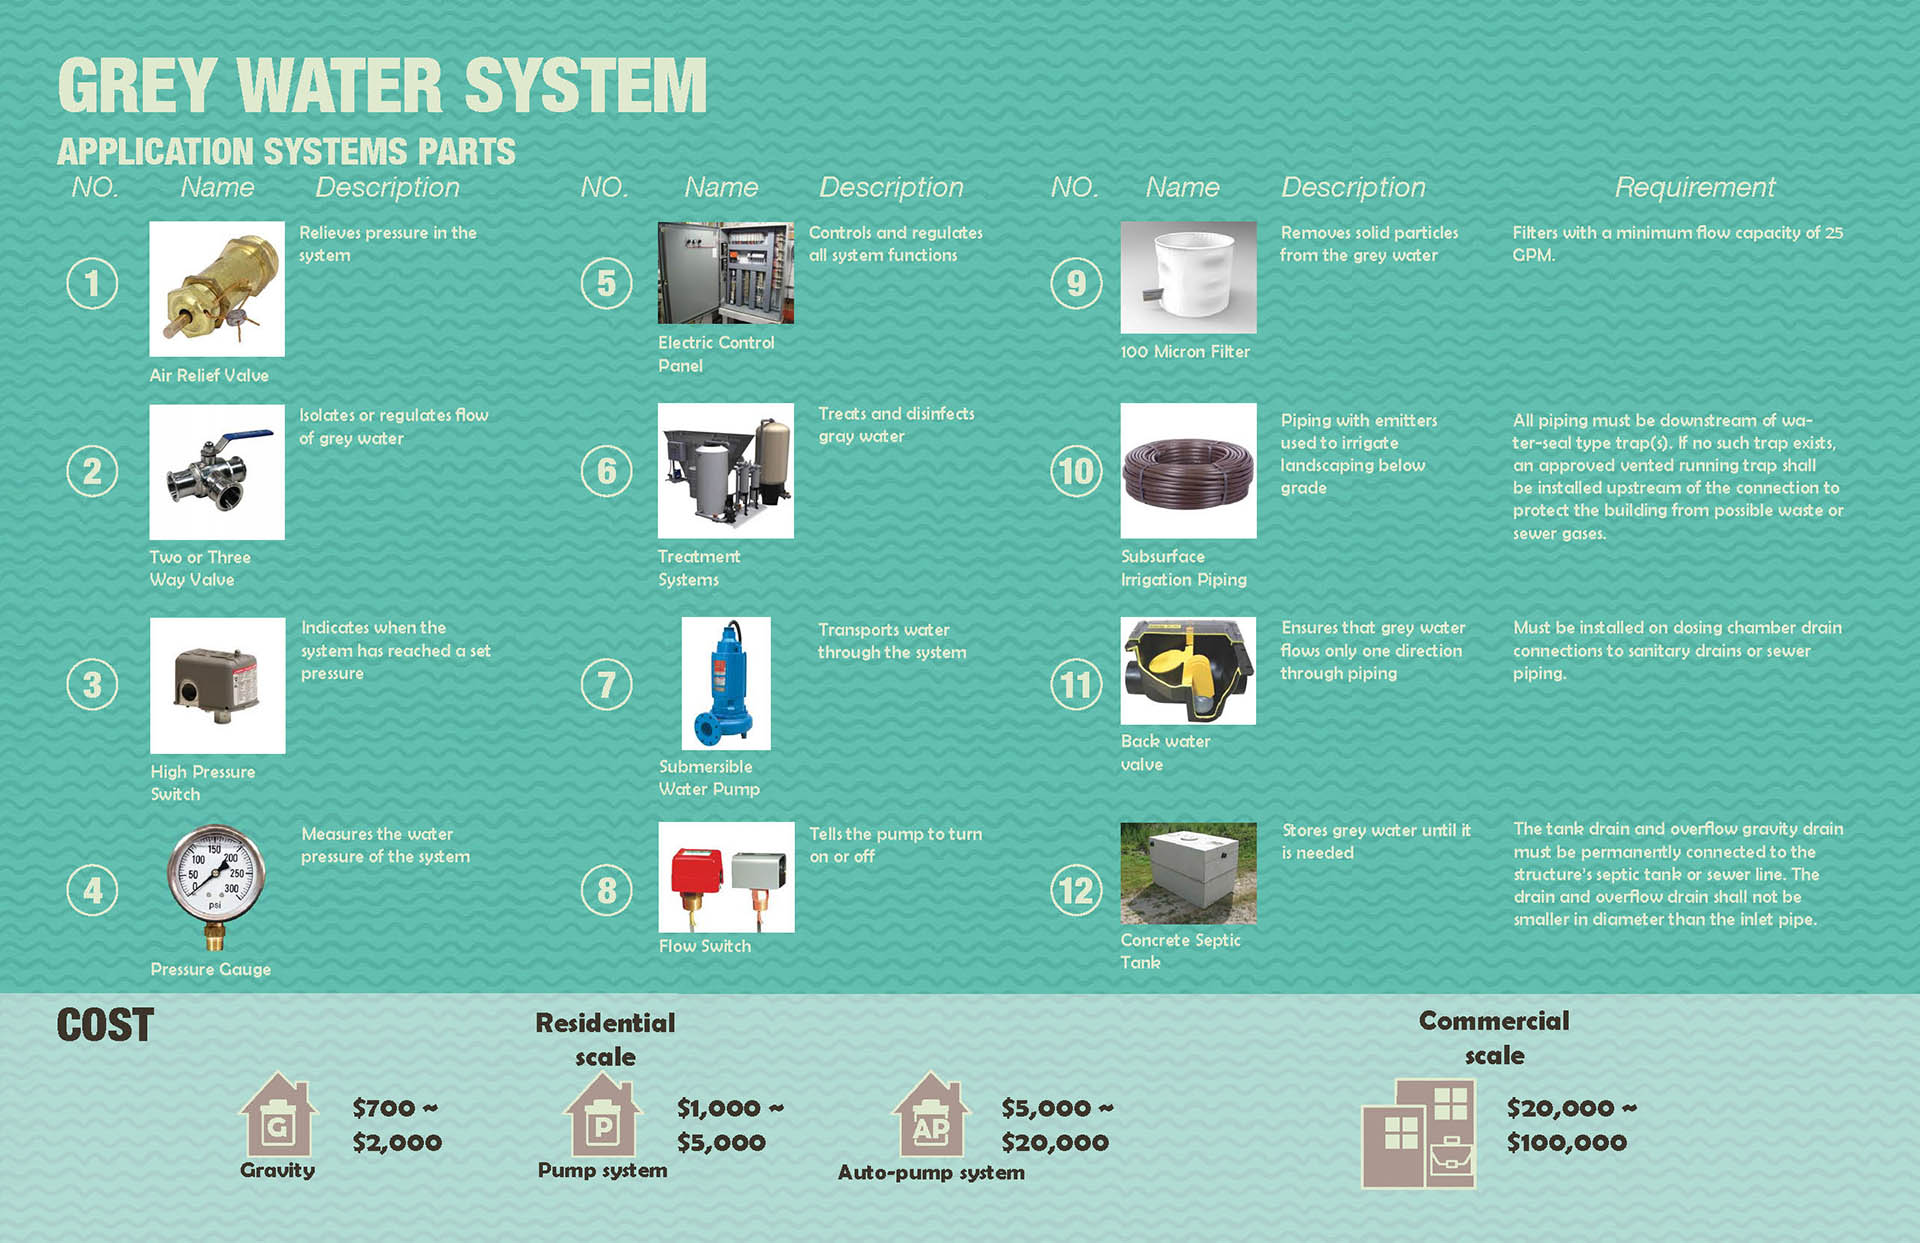 04 Grey Water Application Parts and Probable Cost.jpg